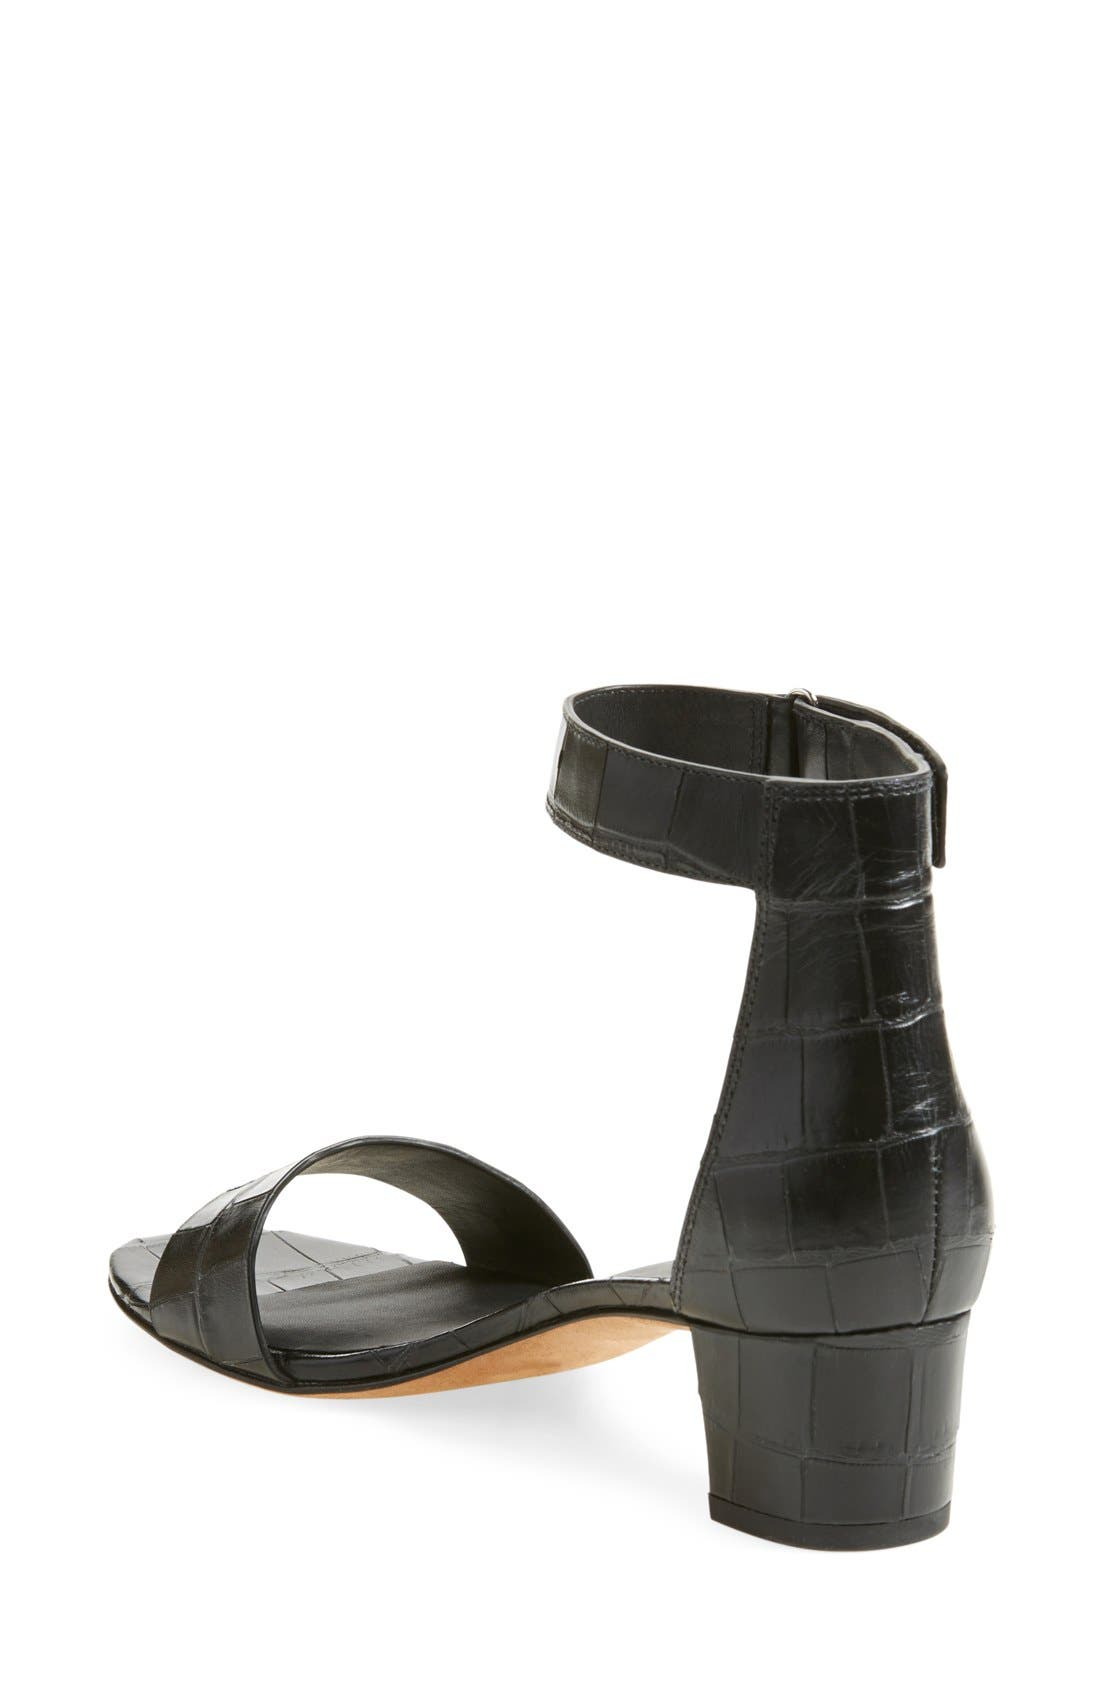 Alternate Image 2  - Vince 'Rita' Leather Ankle Strap Sandal (Women)